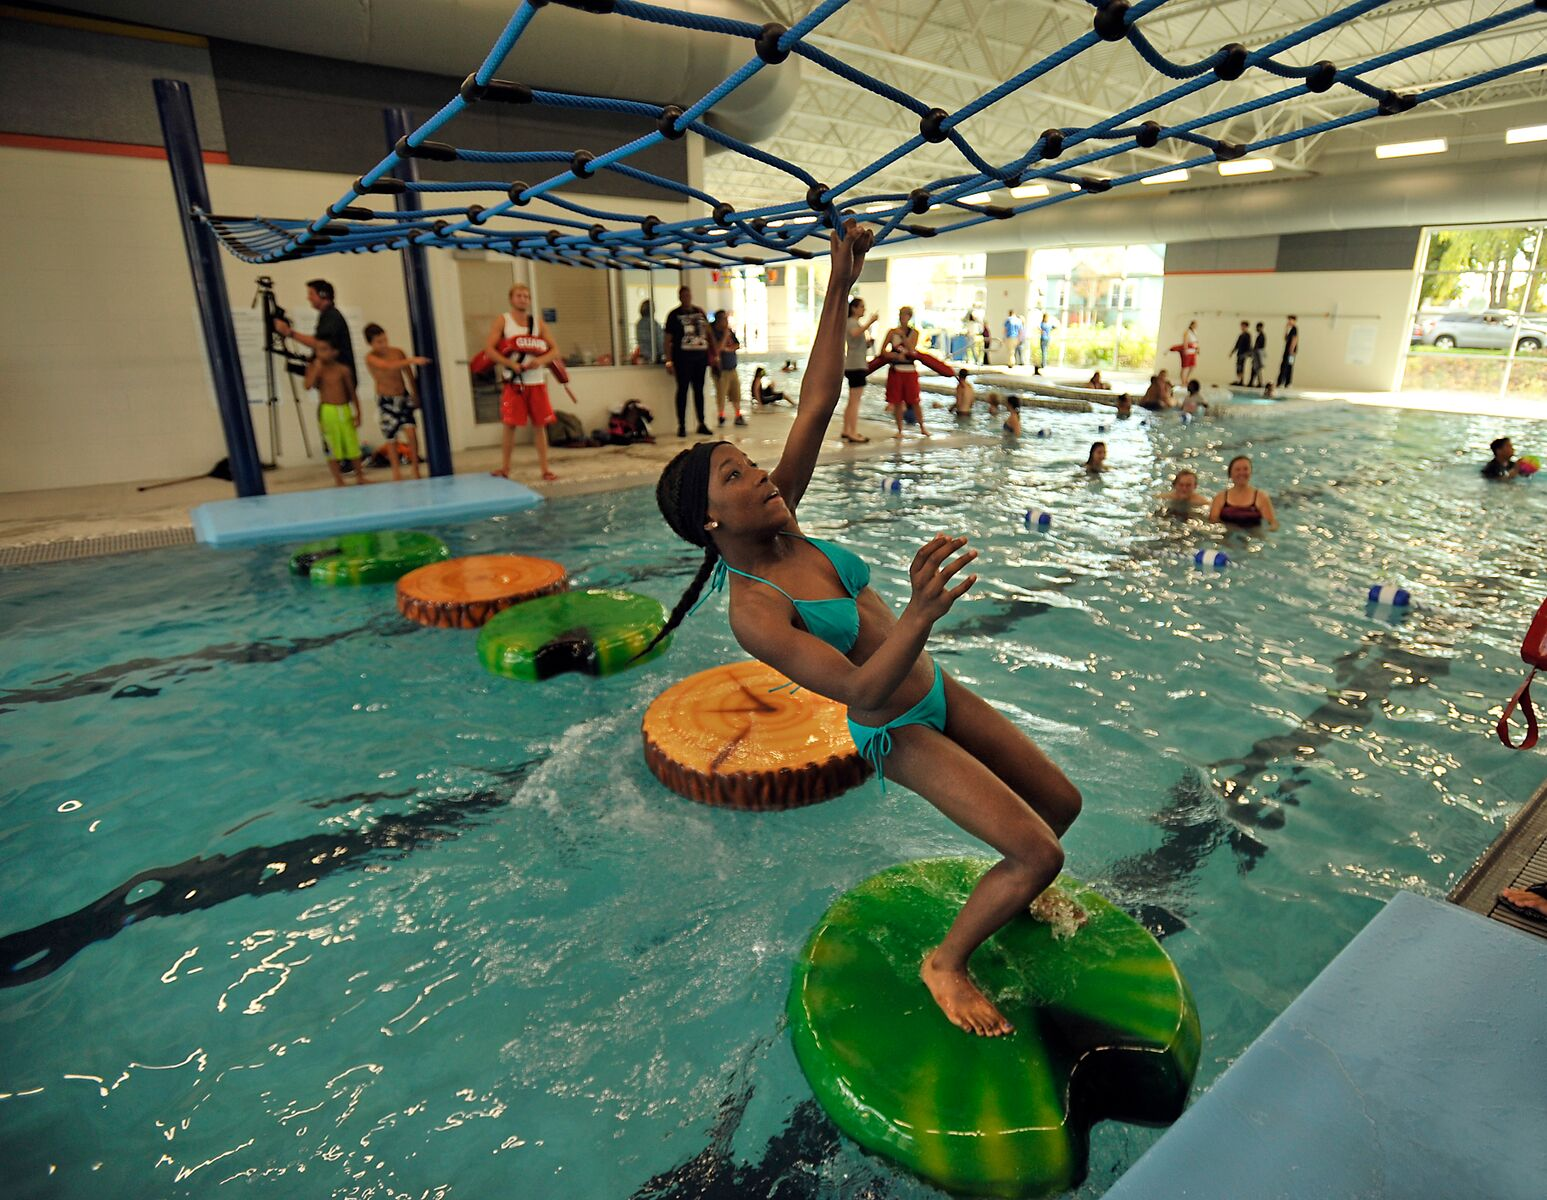 Indoor Swimming Pool With Slides swimming in seattle: insider's guide to kid-friendly indoor